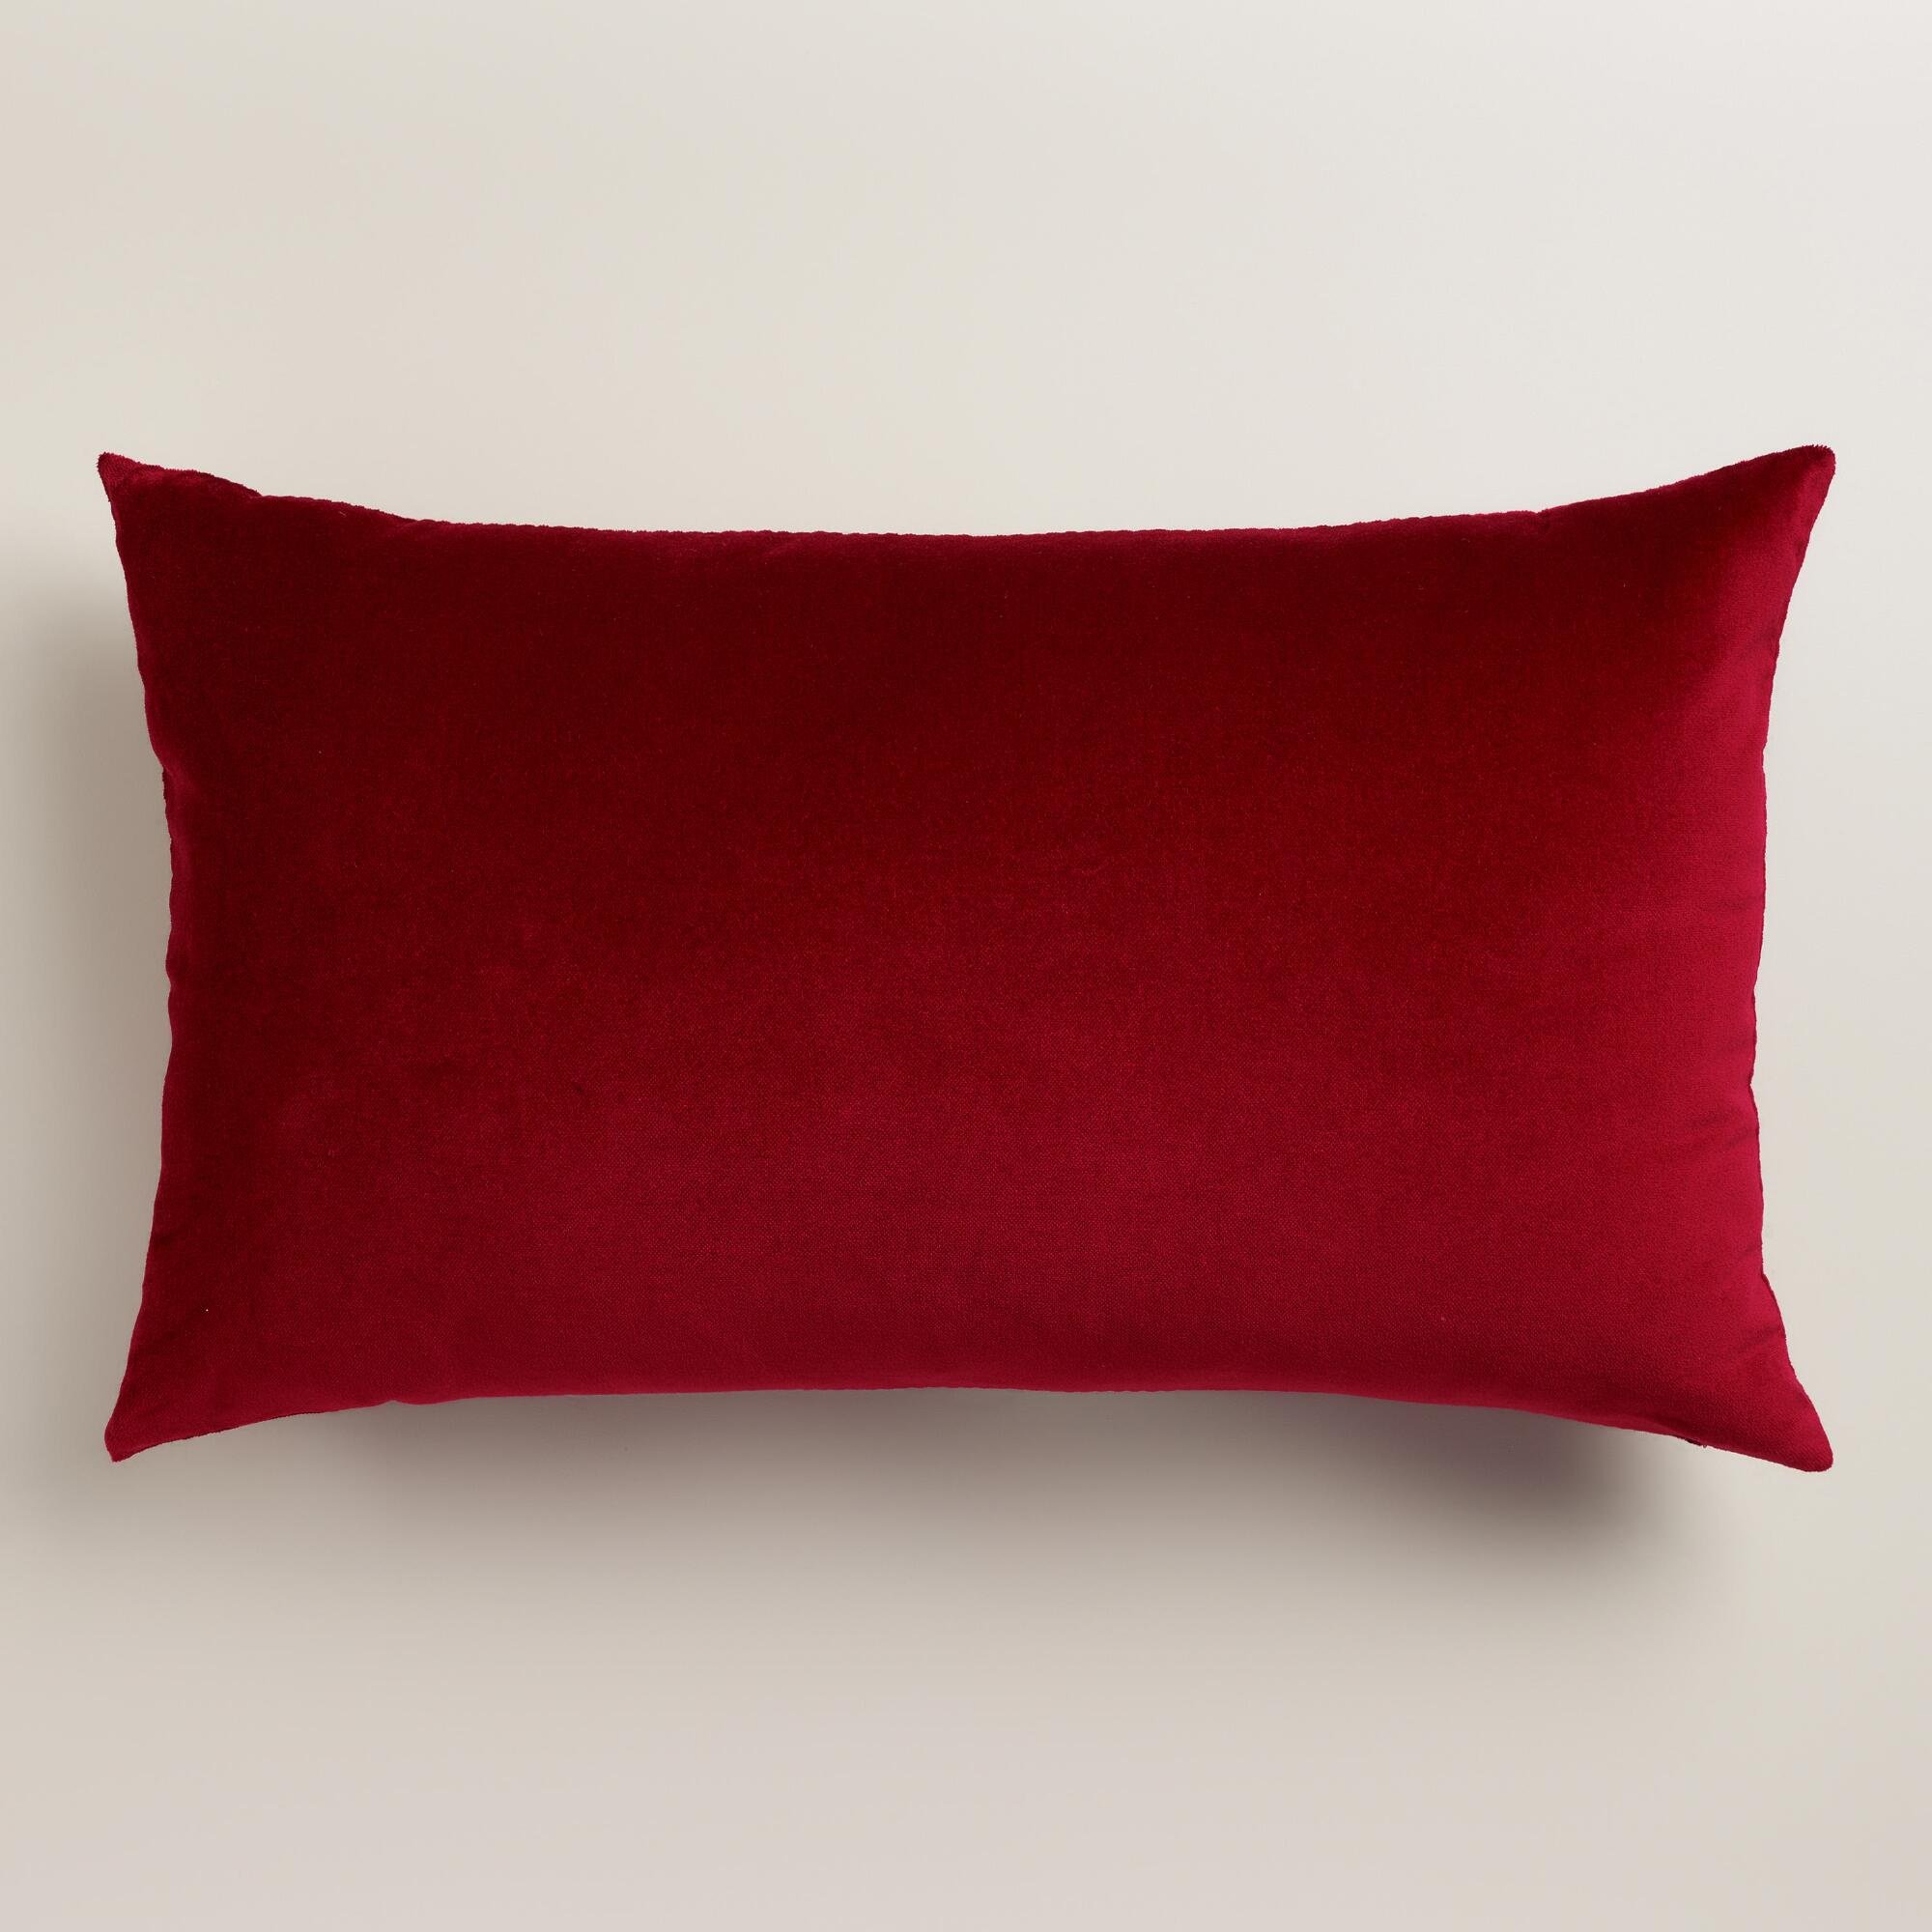 Find great deals on eBay for red velvet cushion cover. Shop with confidence.